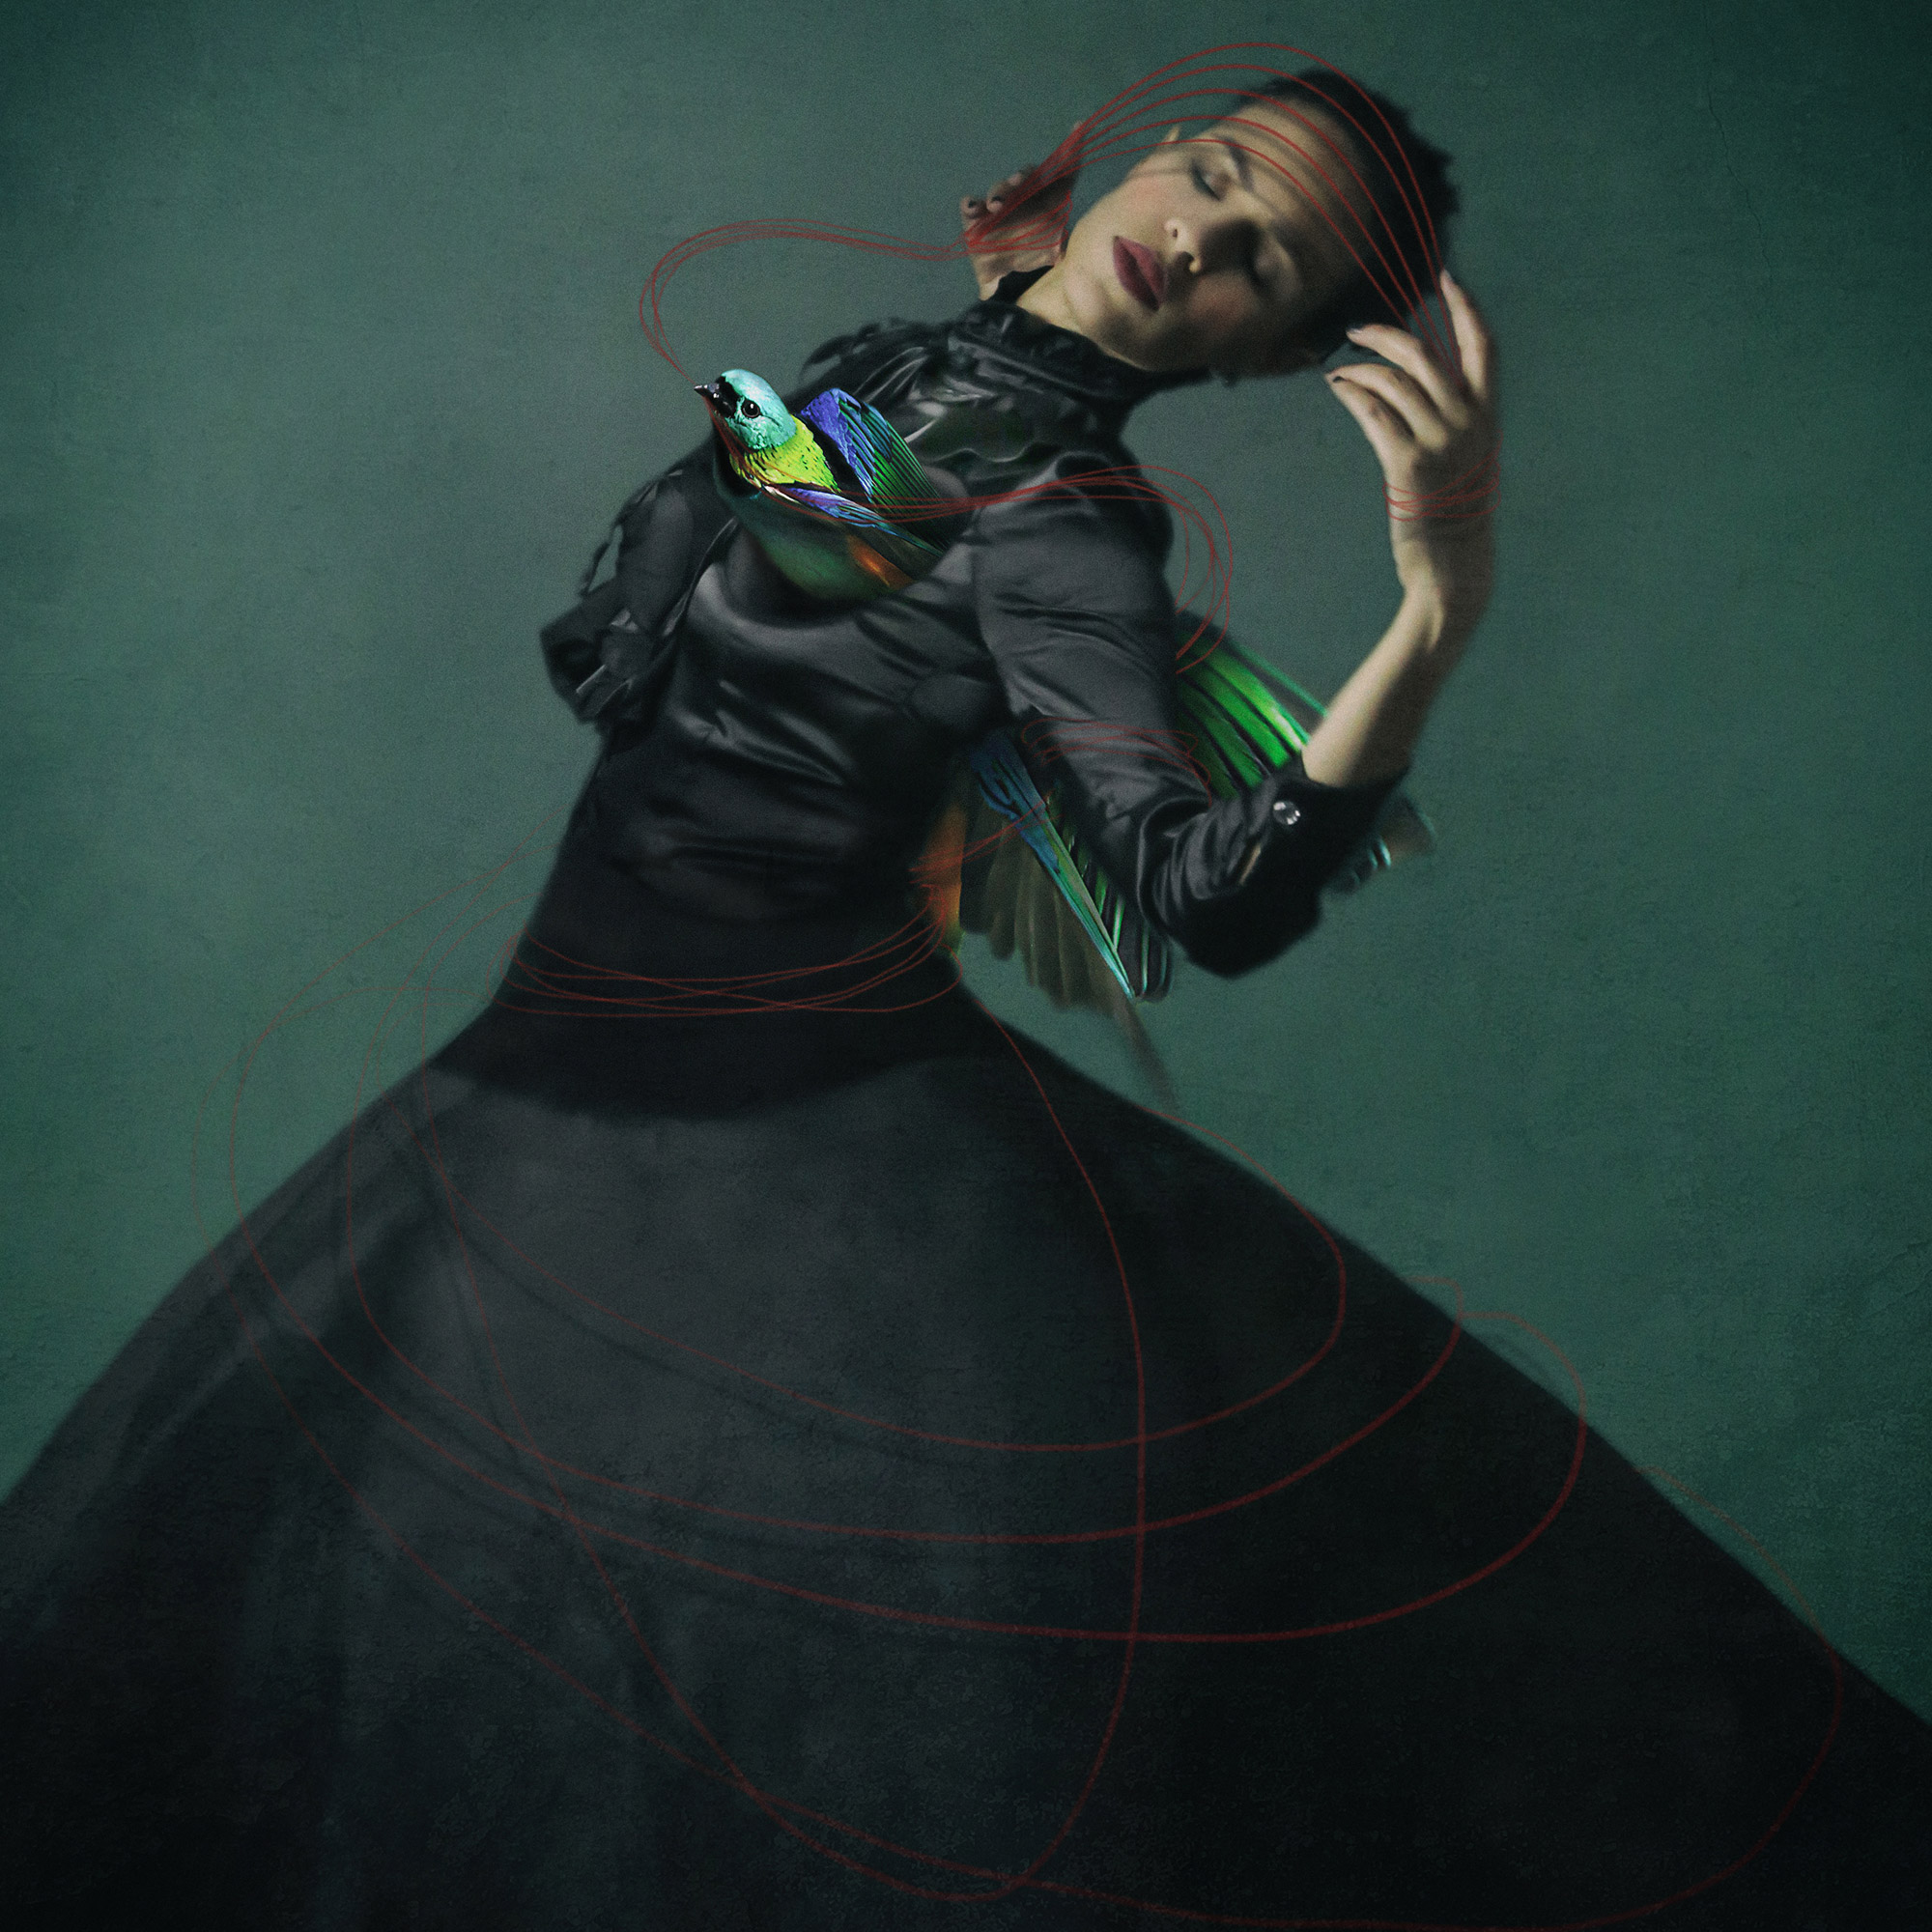 Dance and Surrealism in Josephine Cardin's Self-Portraits